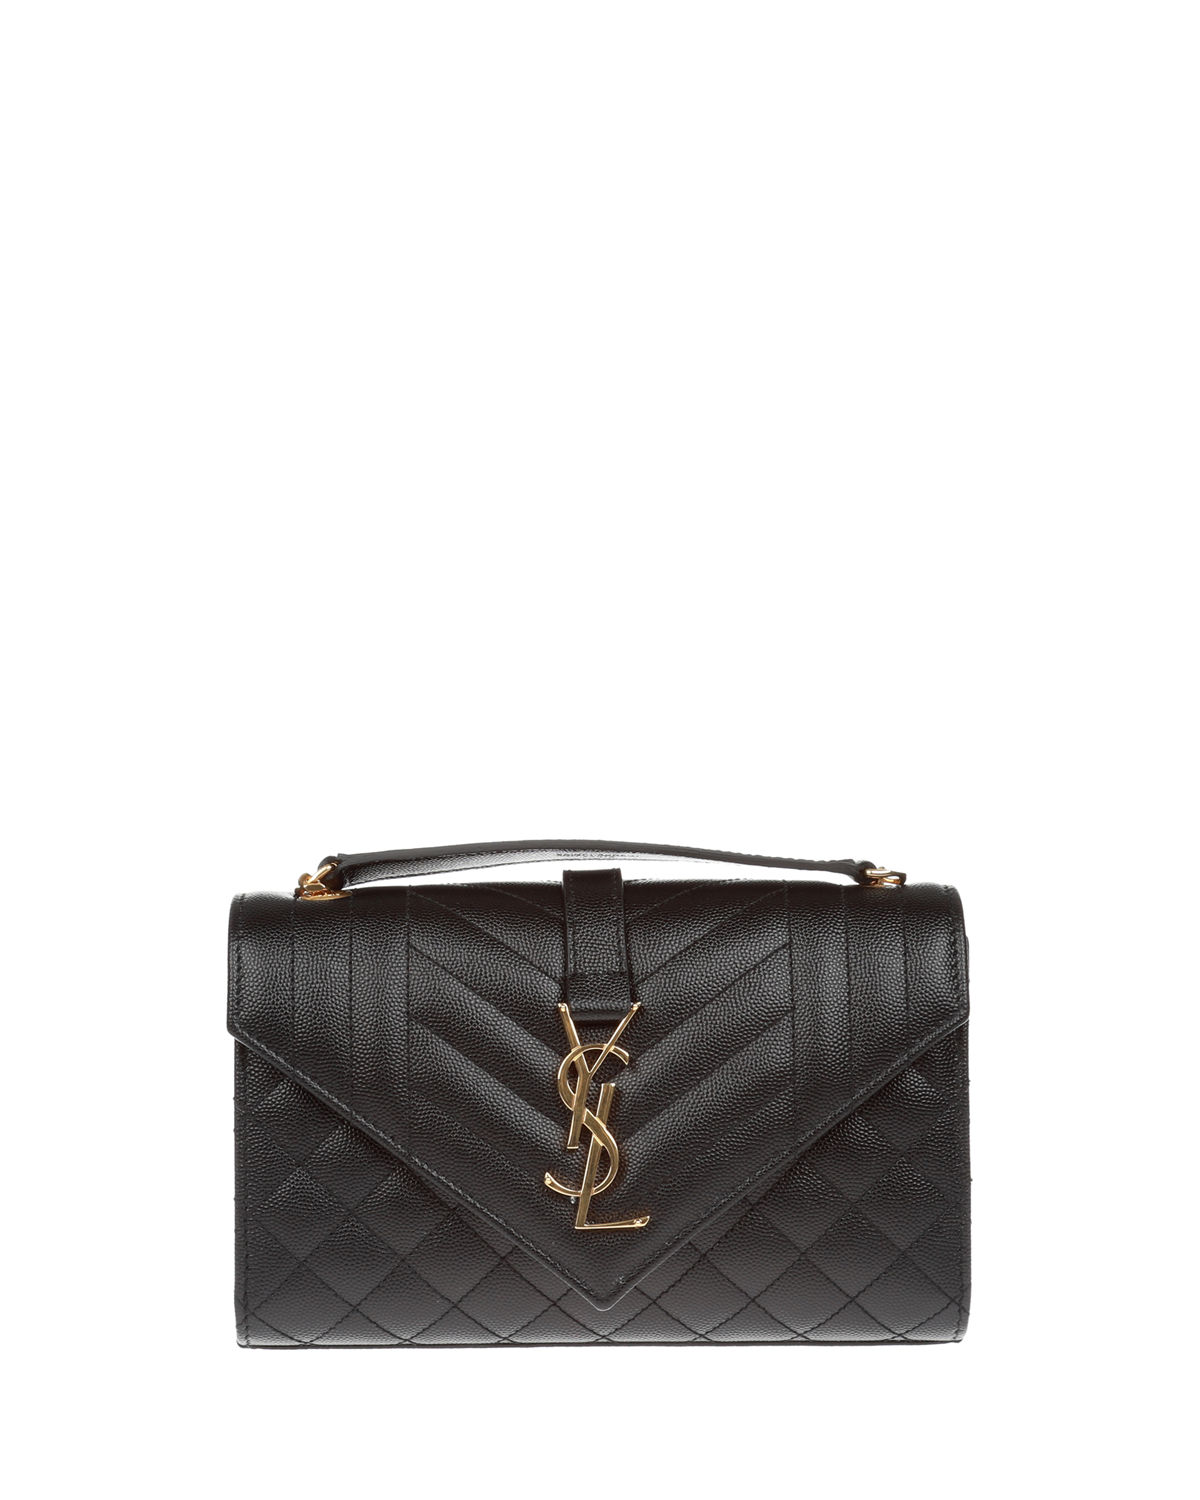 931cab85a41 Saint LaurentMonogram YSL Envelope Small Chain Shoulder Bag - Golden  Hardware